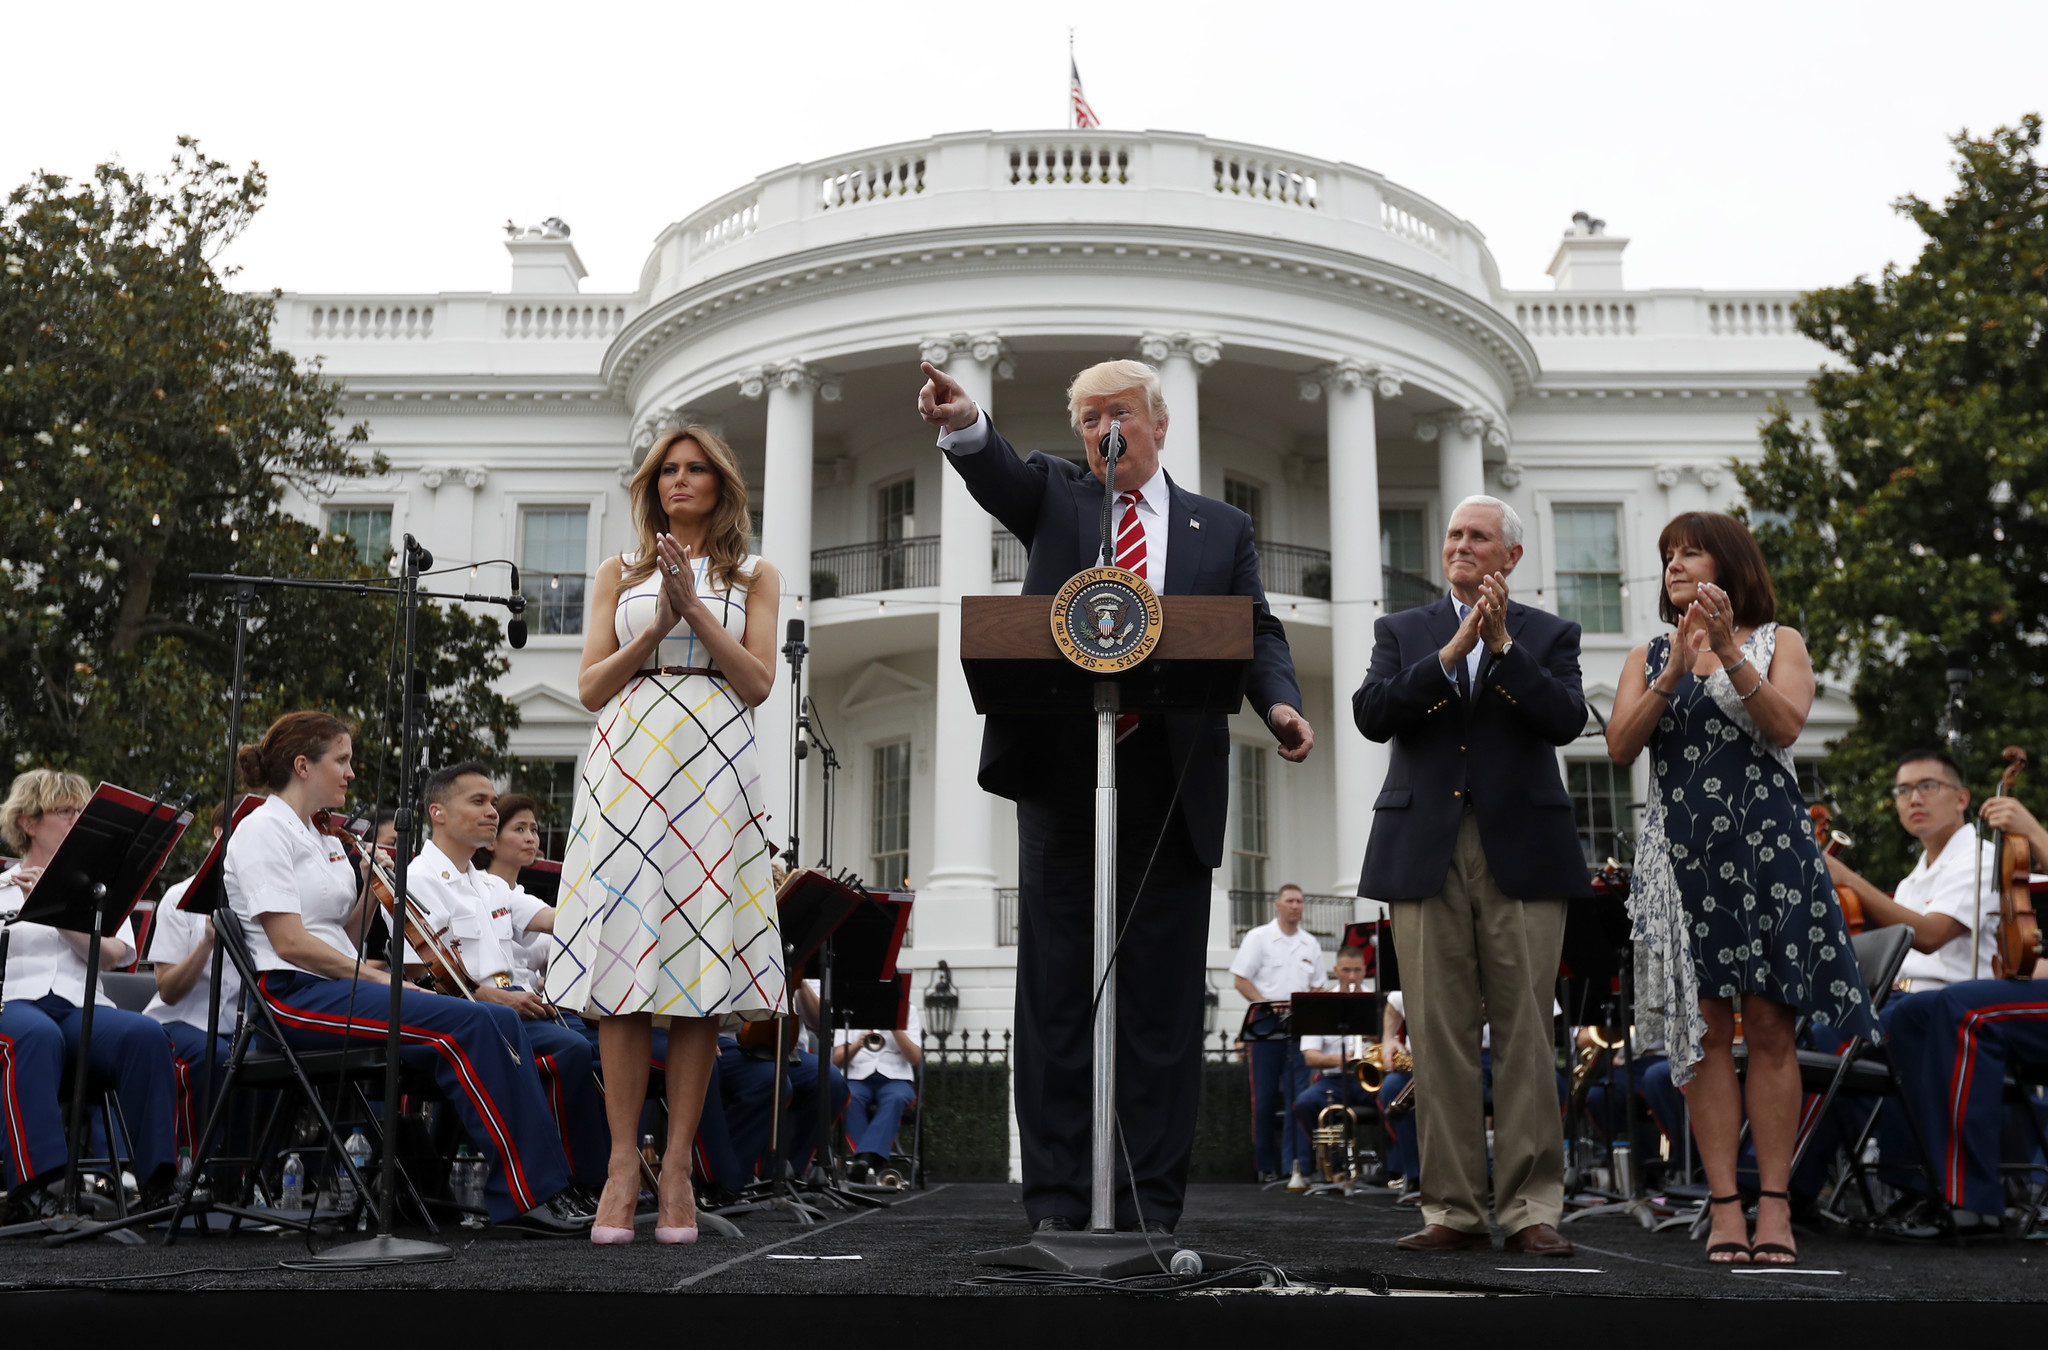 President Trump, flanked by First Lady Melania Trump, Vice President Mike Pence and wife Karen Pence, speaks at the congressional picnic at the White House on Thursday, June 22, 2017. (Alex Brandon / Associated Press)